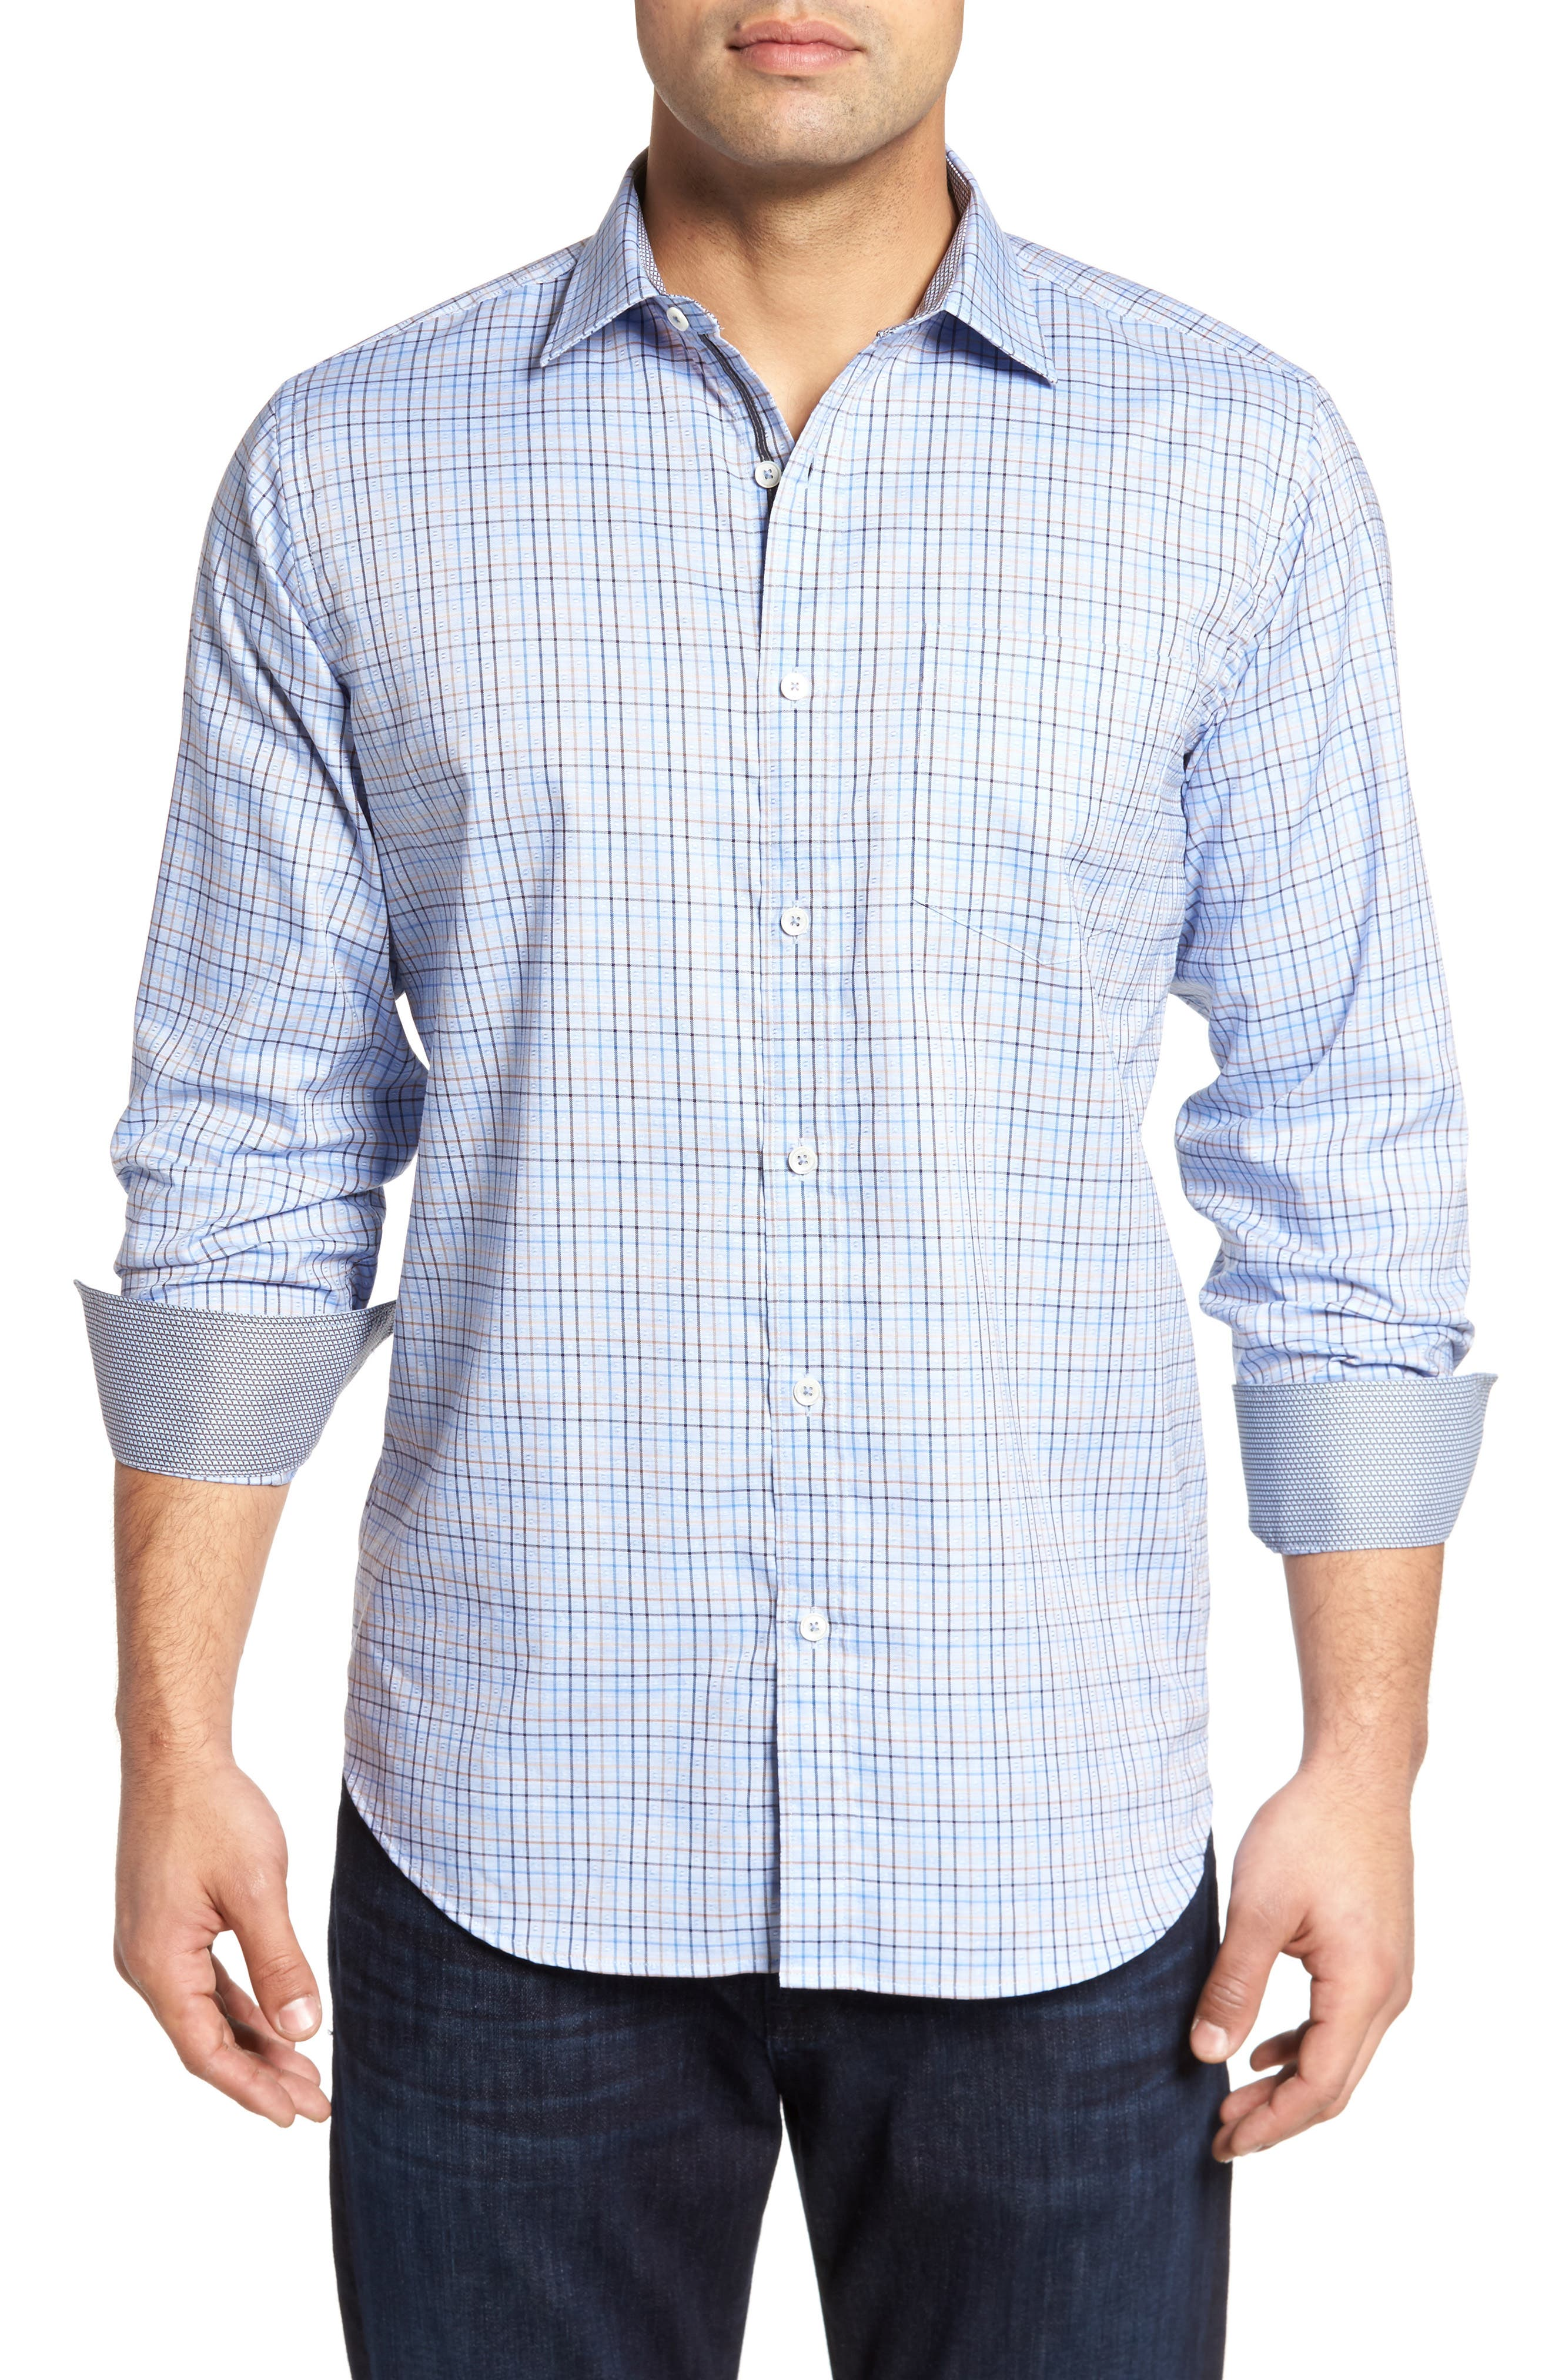 Alternate Image 1 Selected - Bugatchi Classic Fit Dobby Grid Plaid Sport Shirt